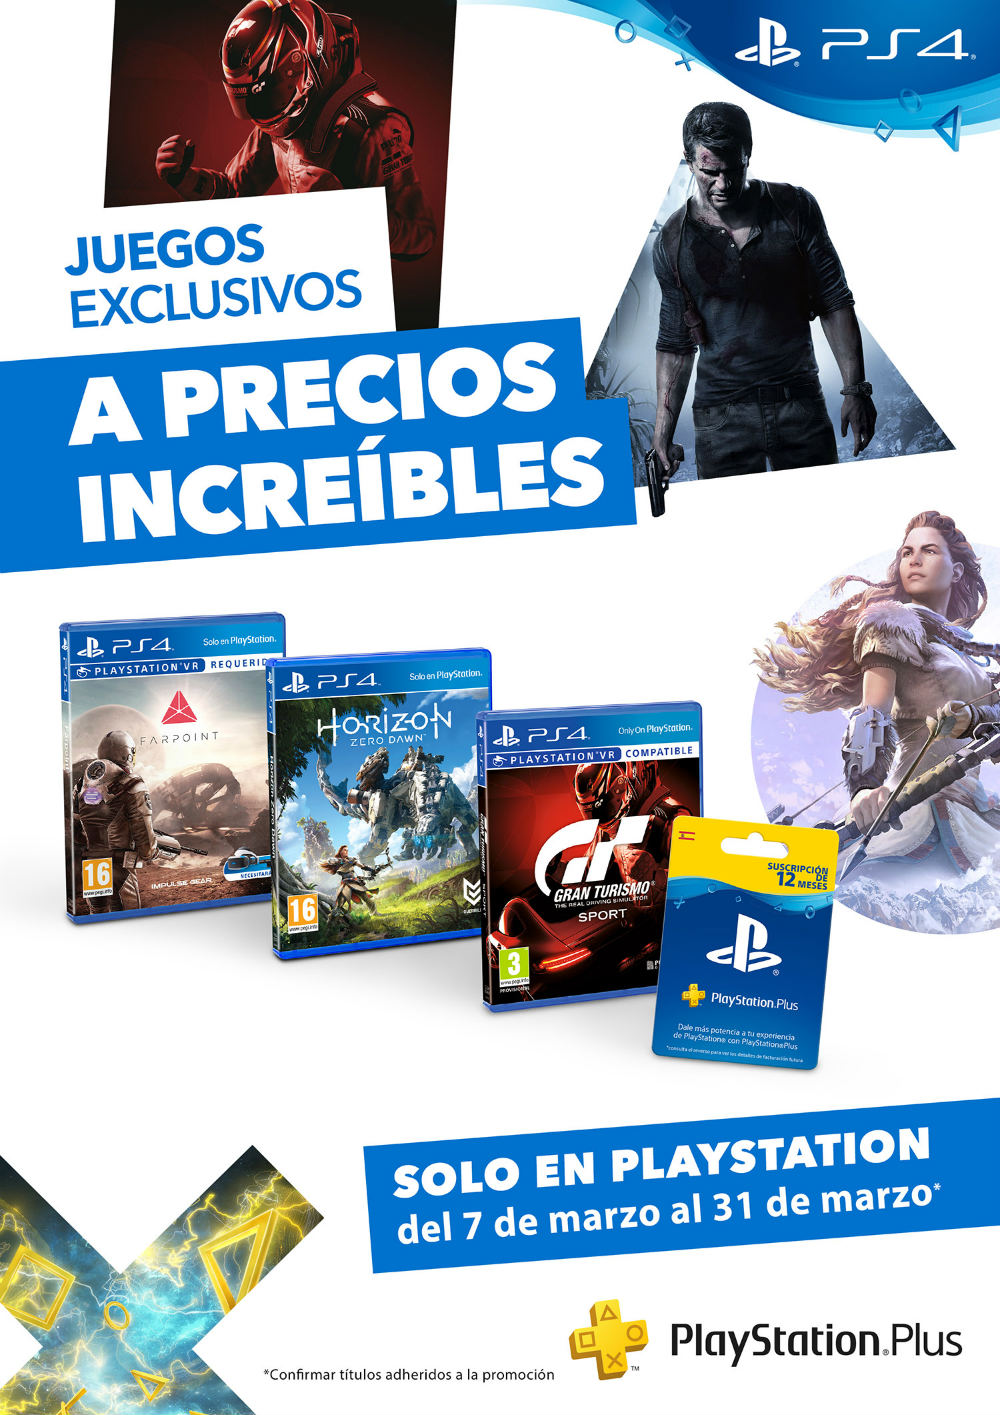 Solo en PlayStation